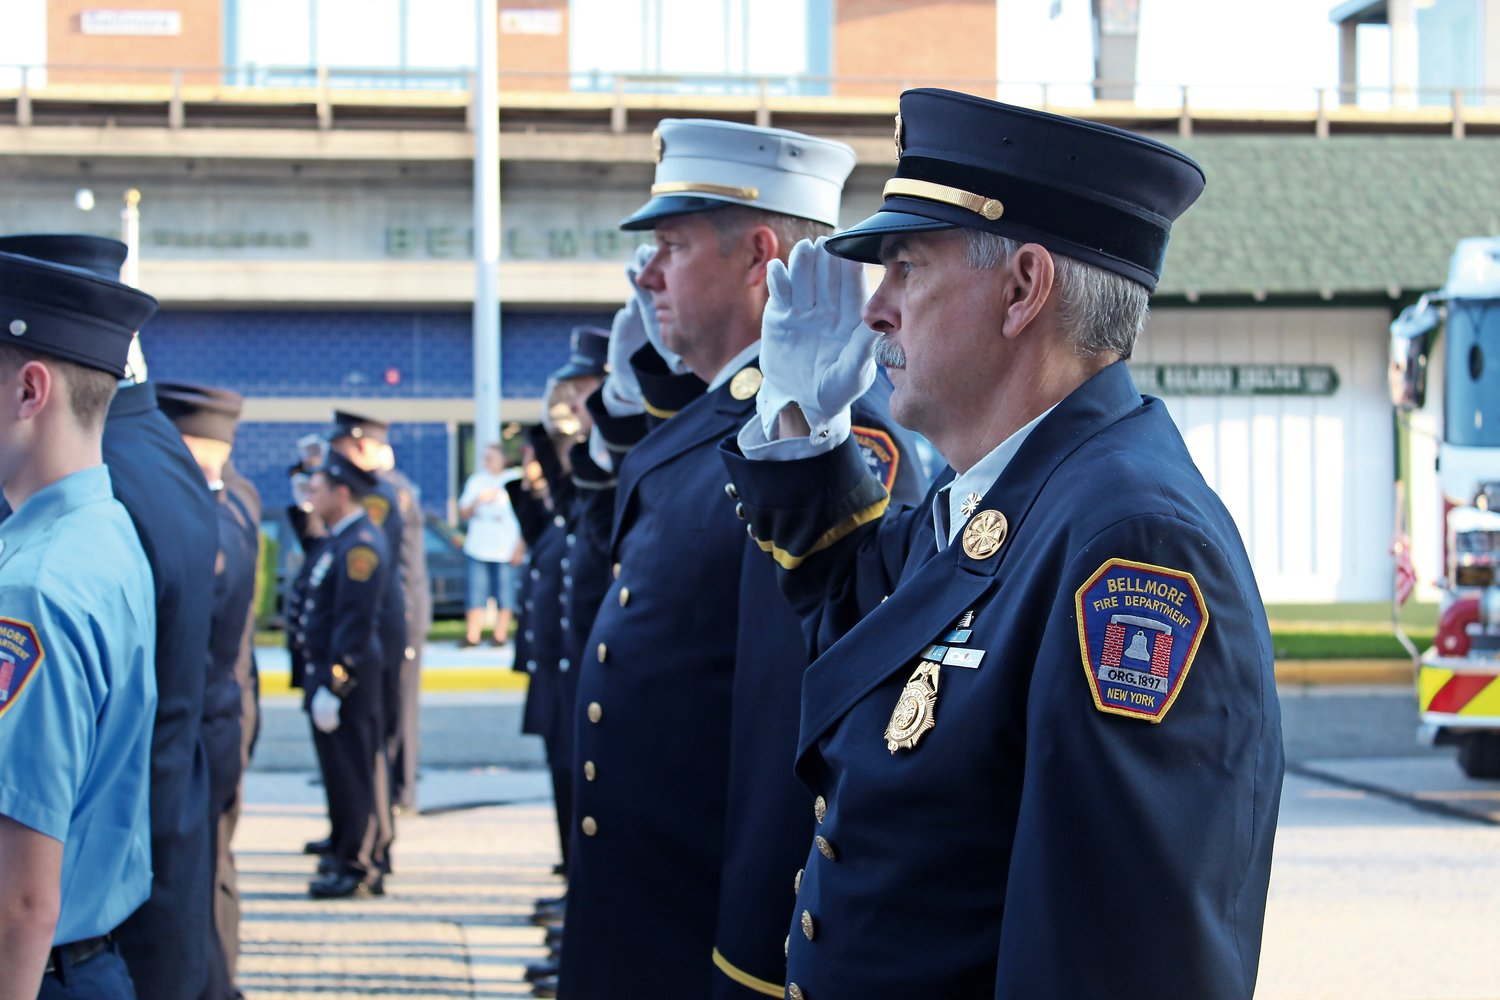 Bellmore Fire Department ex-chief Thomas Stoerger saluted in silence as the ceremony began.